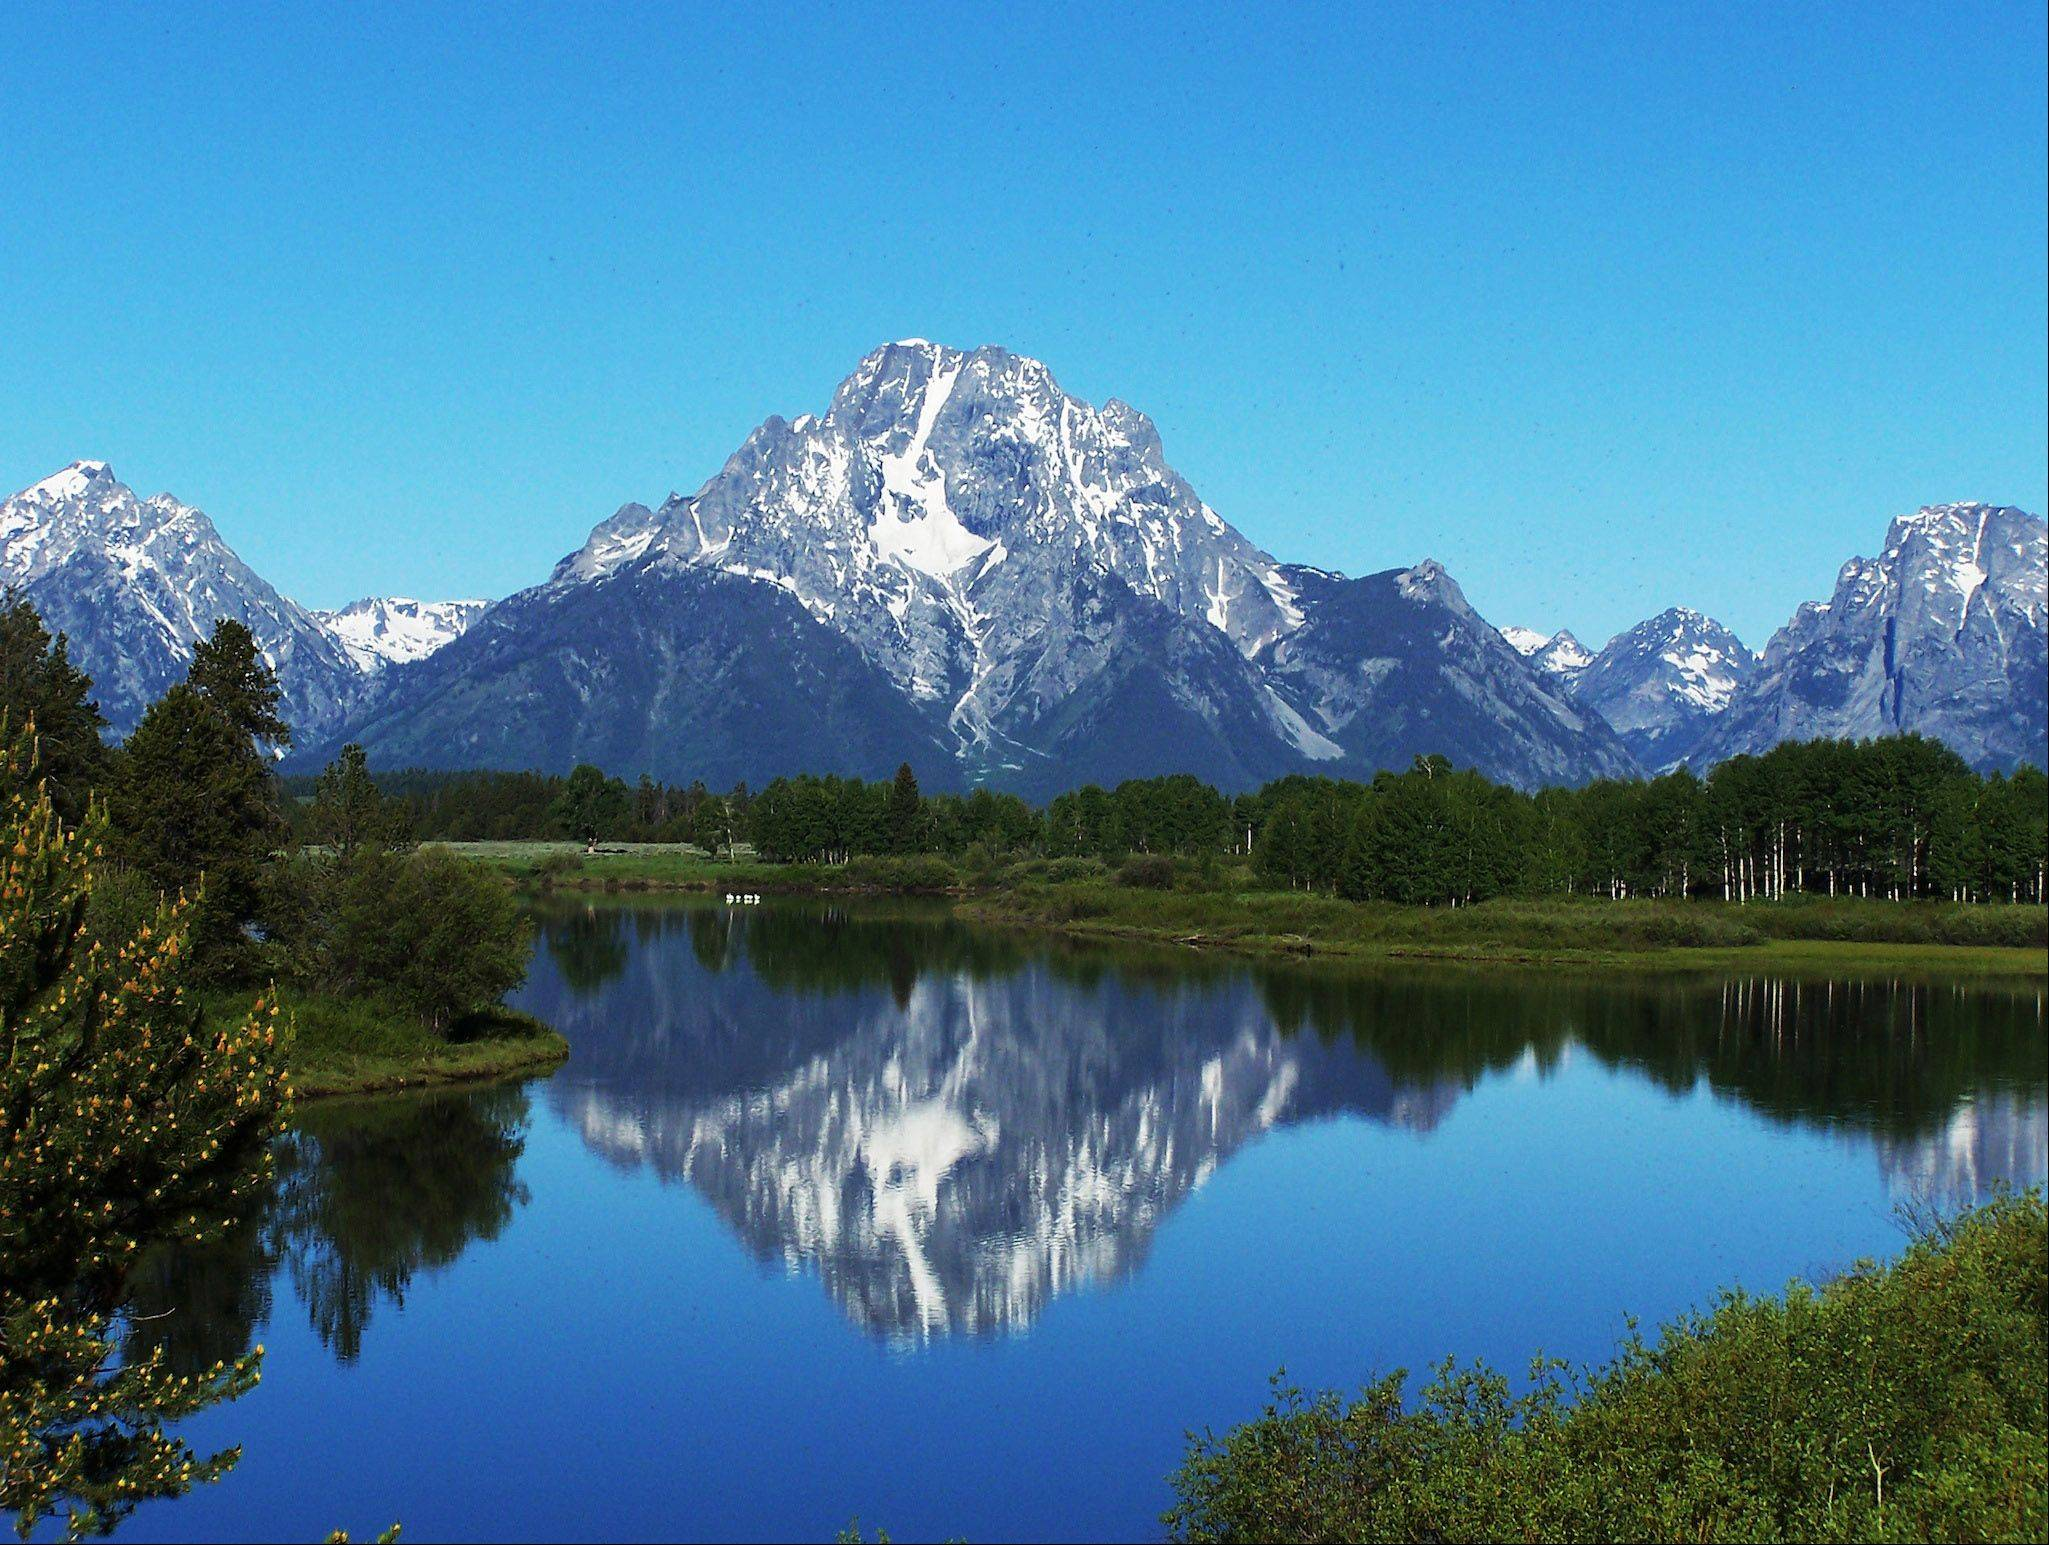 The peaks of the Grand Tetons can be seen from a lake at Ox Bow, Wyoming in 2006.